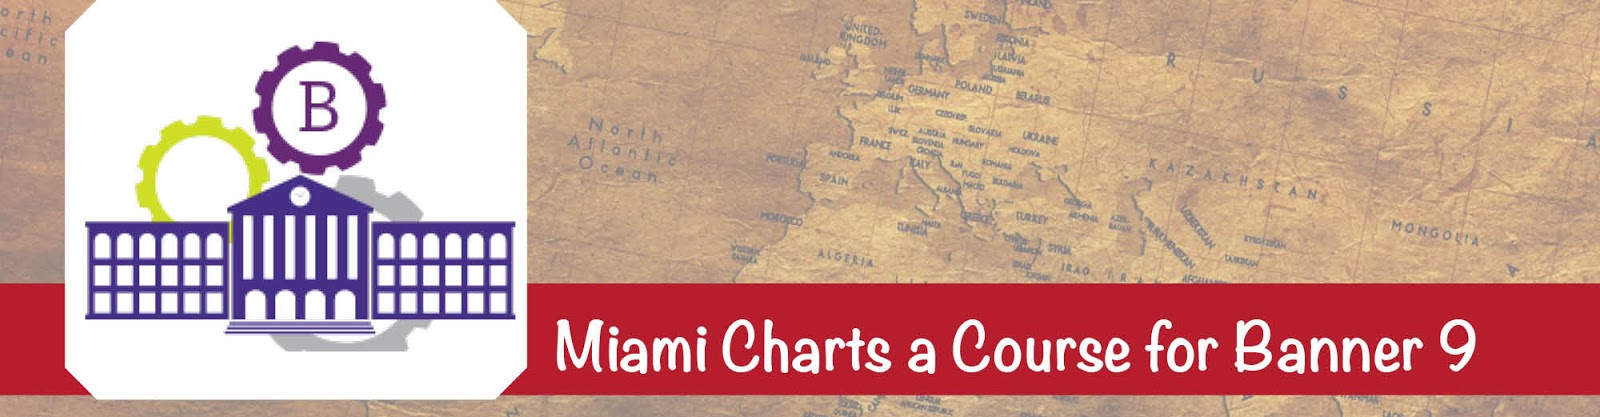 Banner logo with a building and gears behind it next to the words Miami Charts a Course for Banner 9